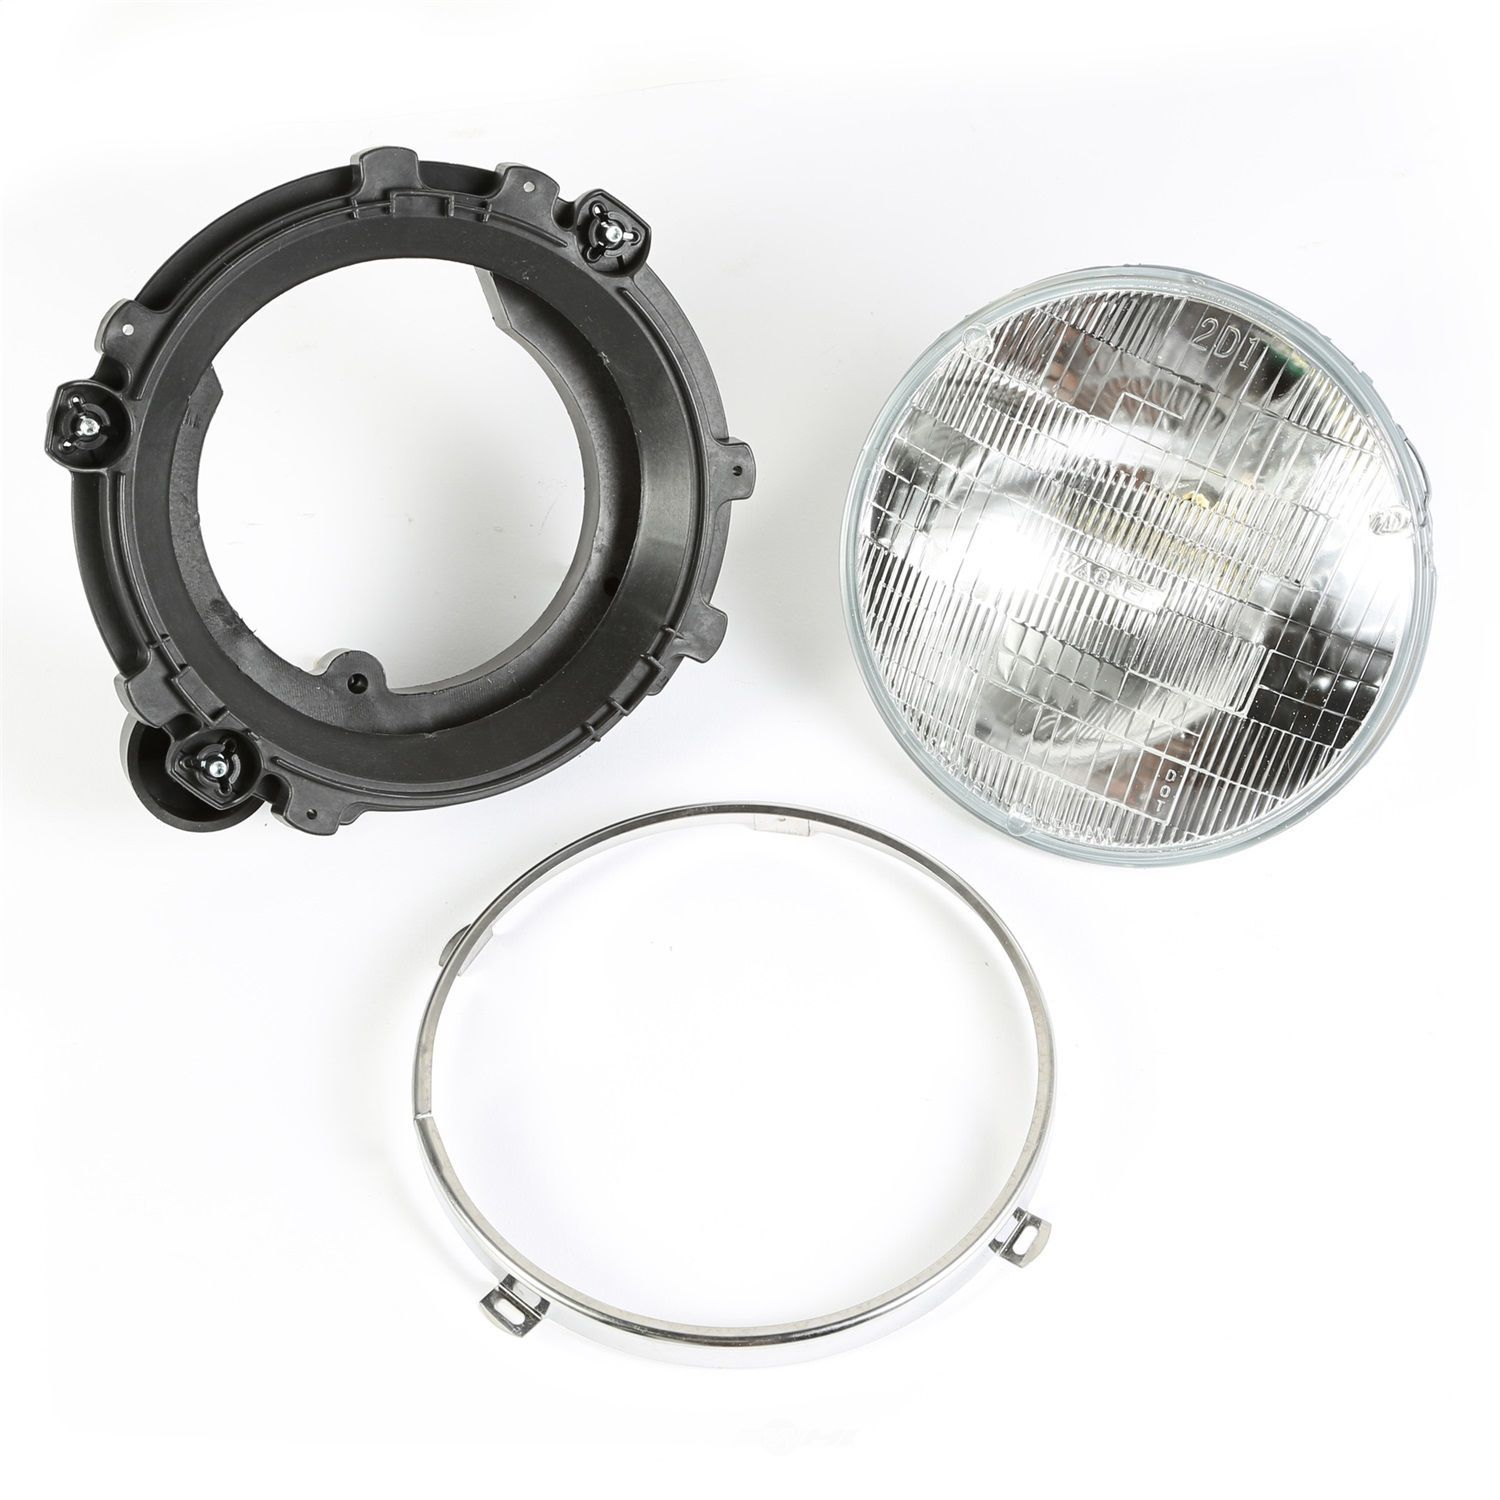 OMIX - Headlight Assembly - OMX 12402.03